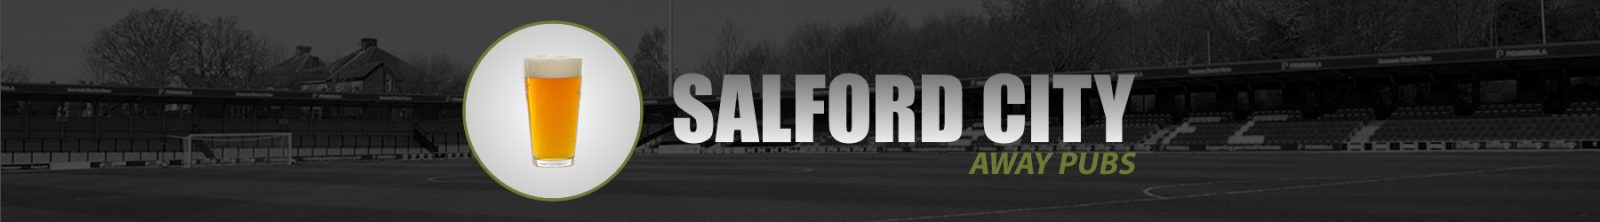 Salford City Away Pubs